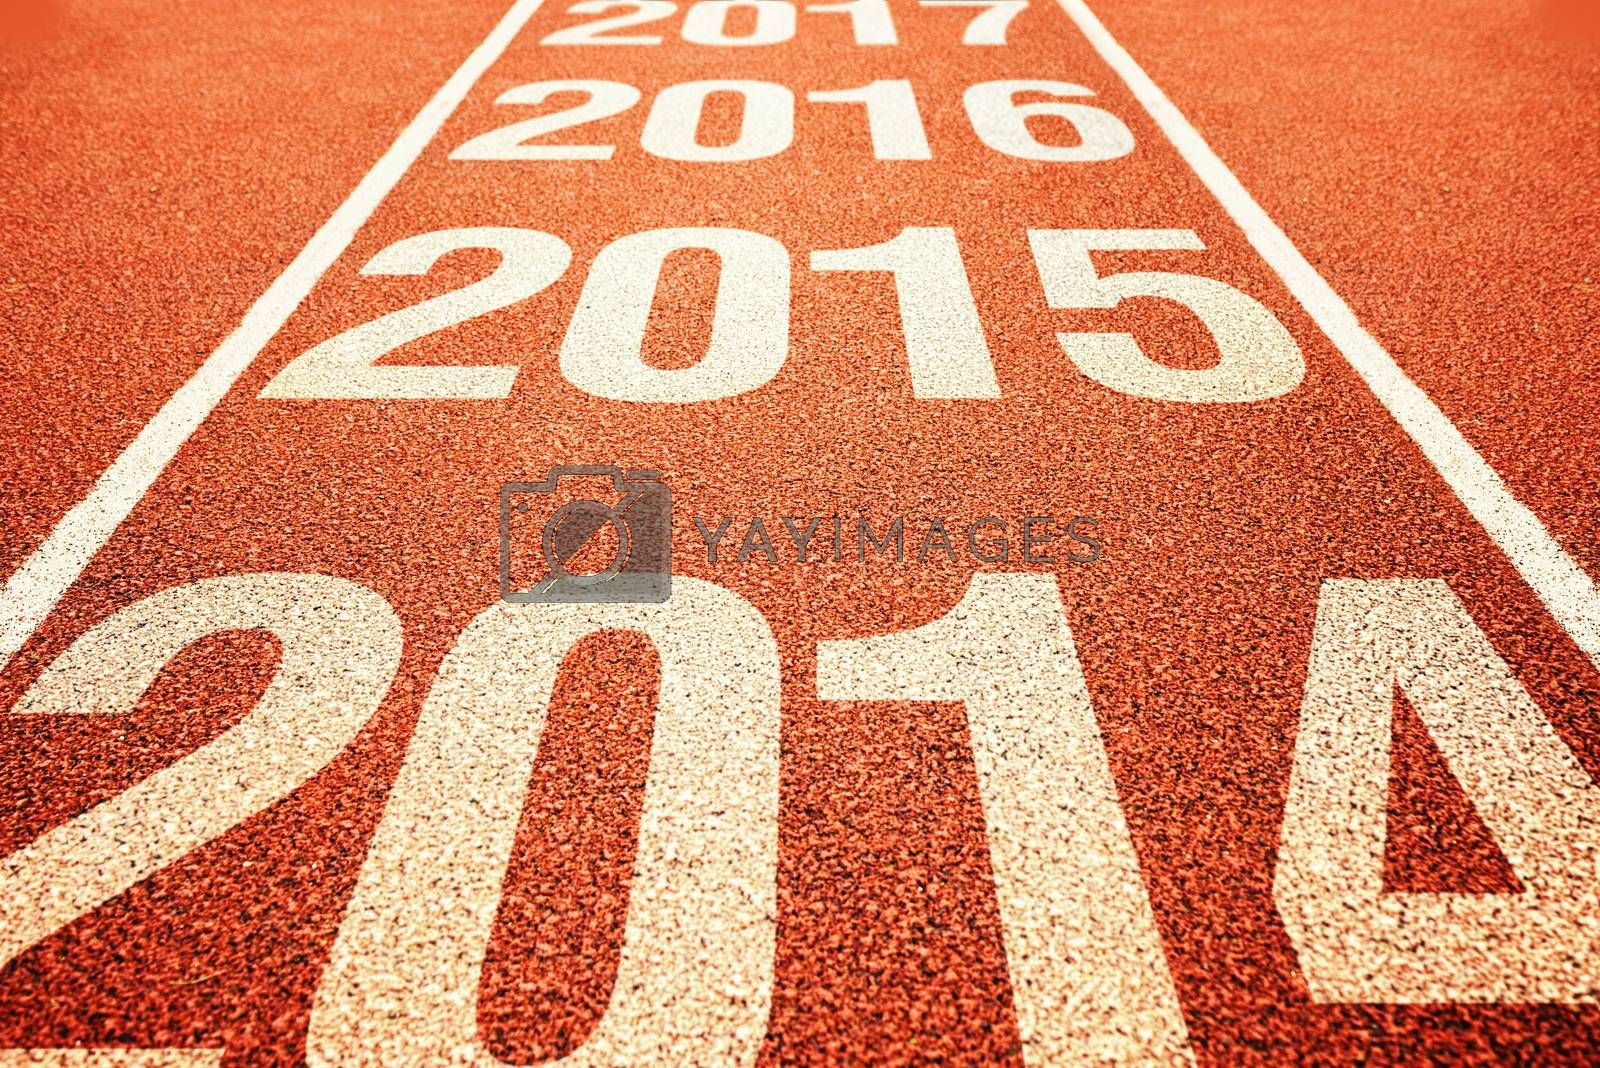 Number 2015 on athletics all weather running track withe preceeding and following years. Happy new 2015 year. Running fast towards New Year.